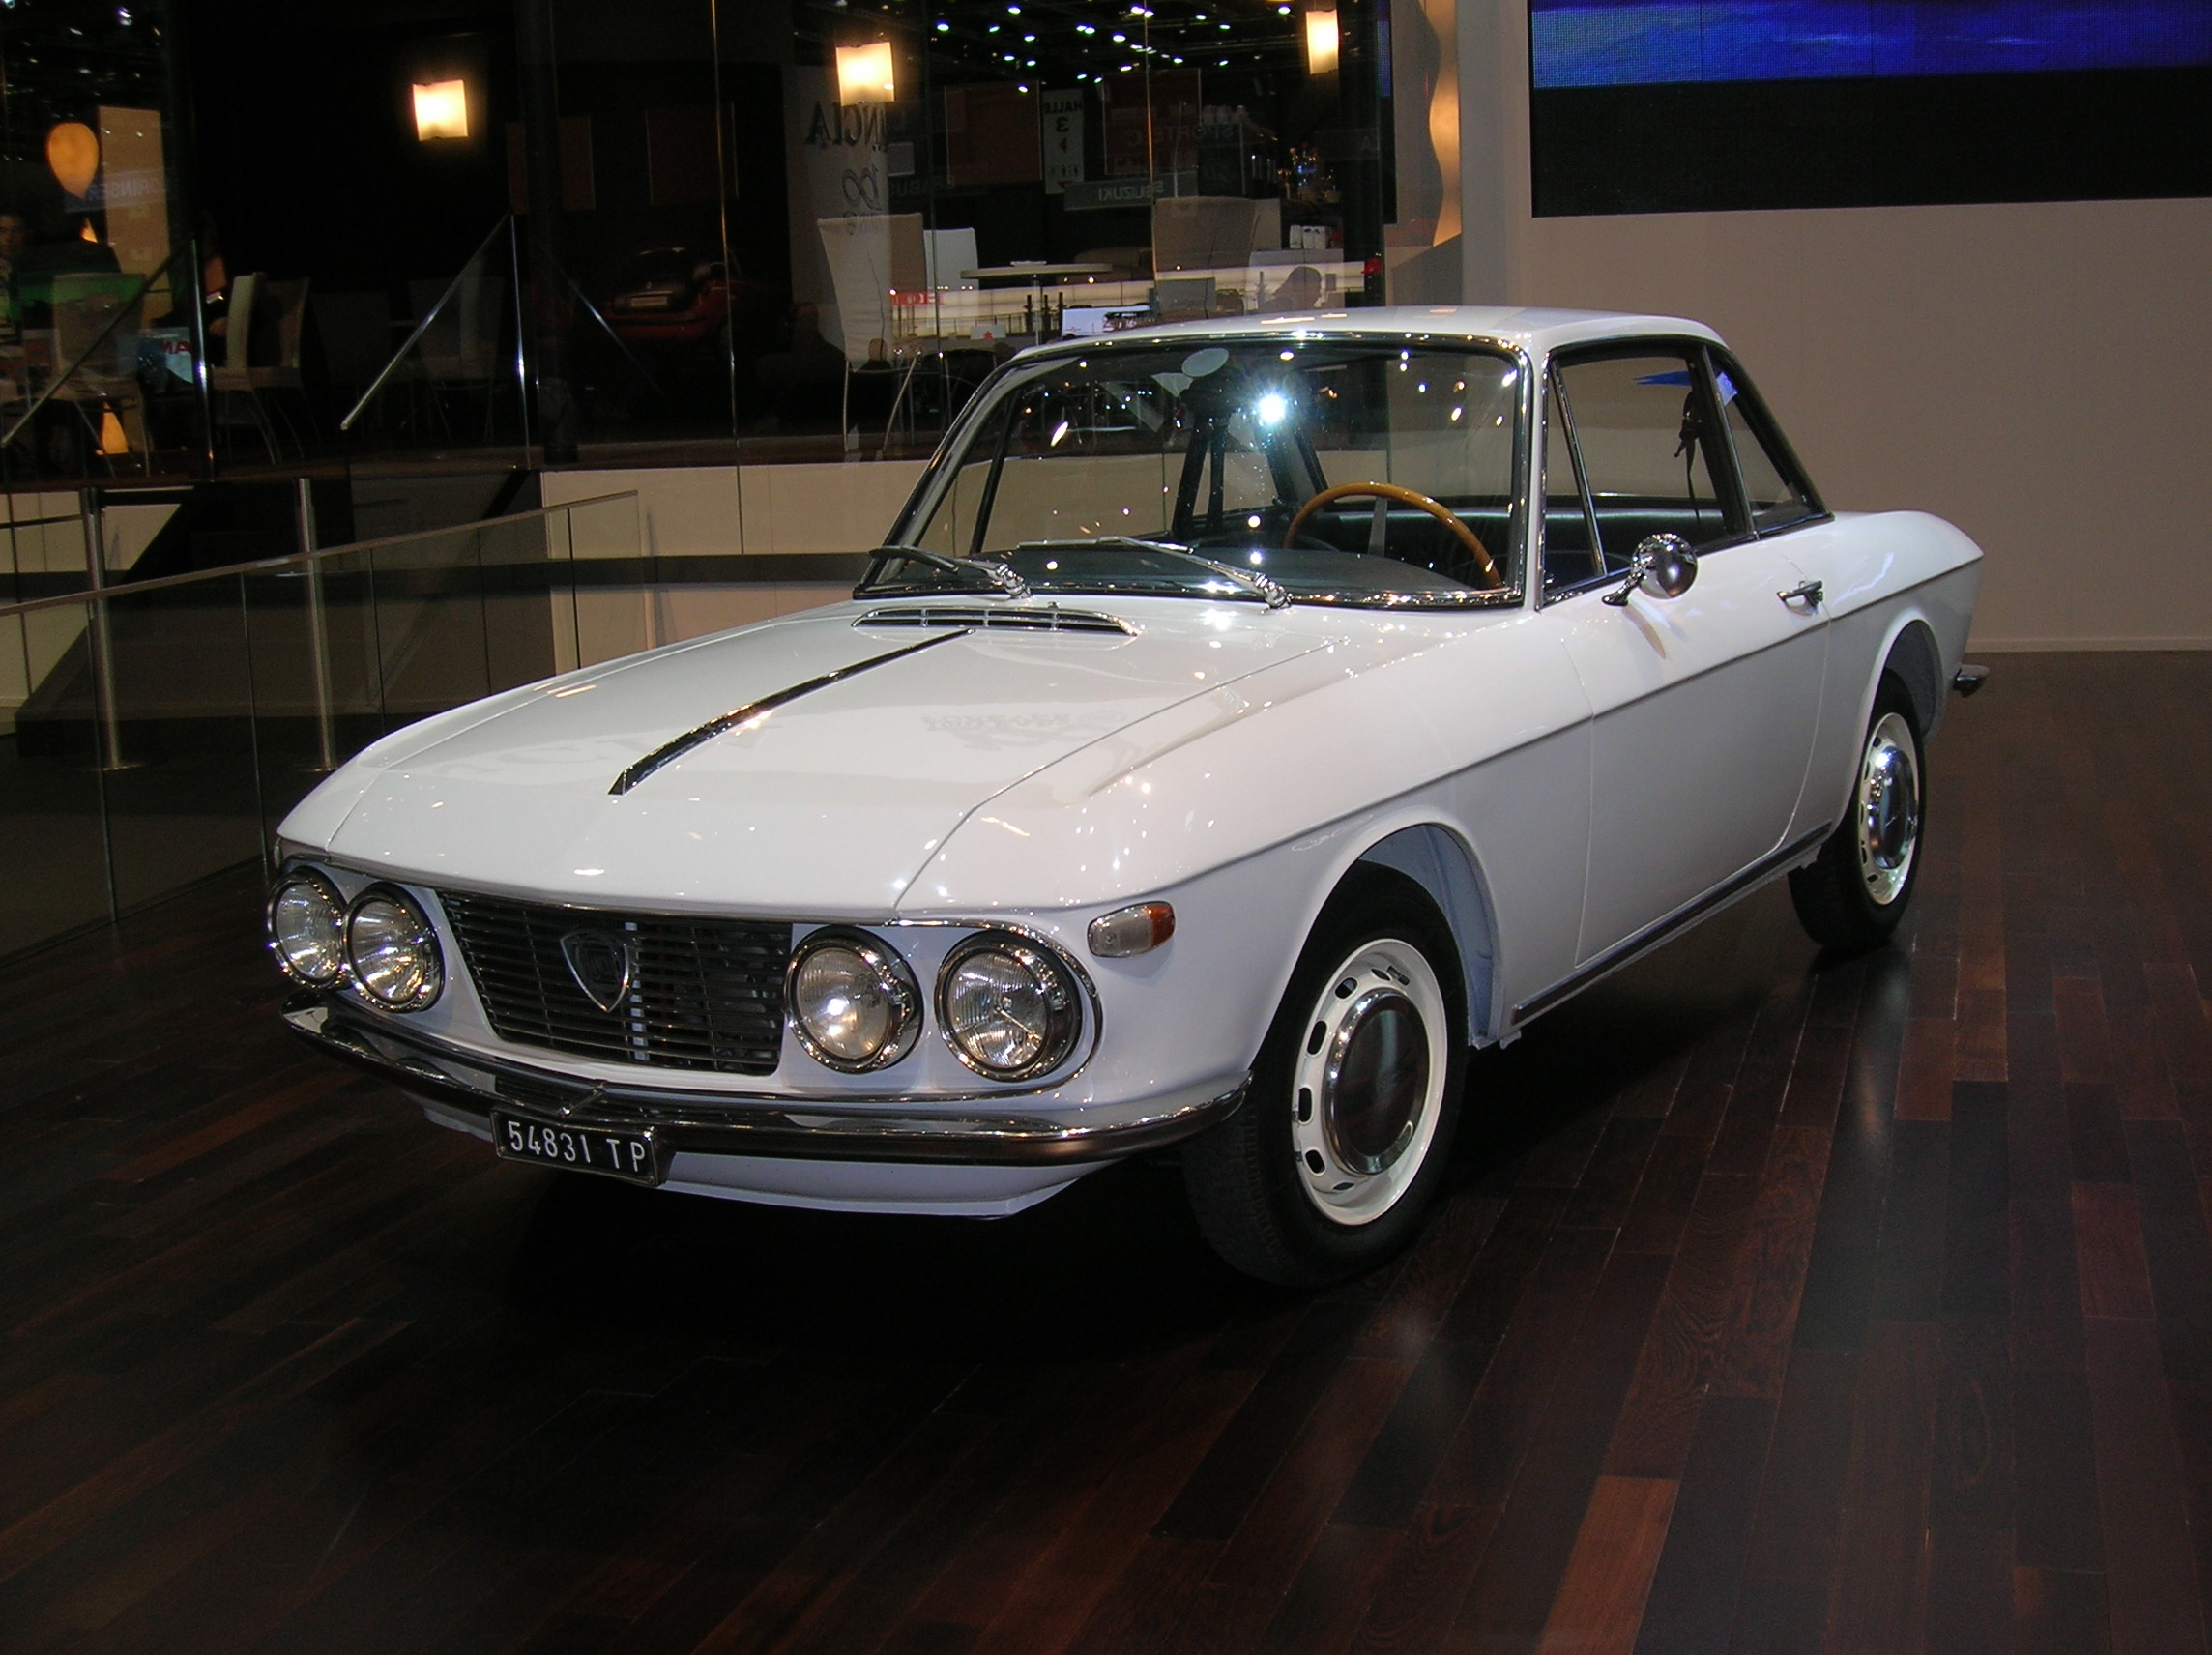 https://upload.wikimedia.org/wikipedia/commons/8/84/2006_SAG_-_Lancia_Fulvia_Coup%C3%A9_I_1967-01.JPG